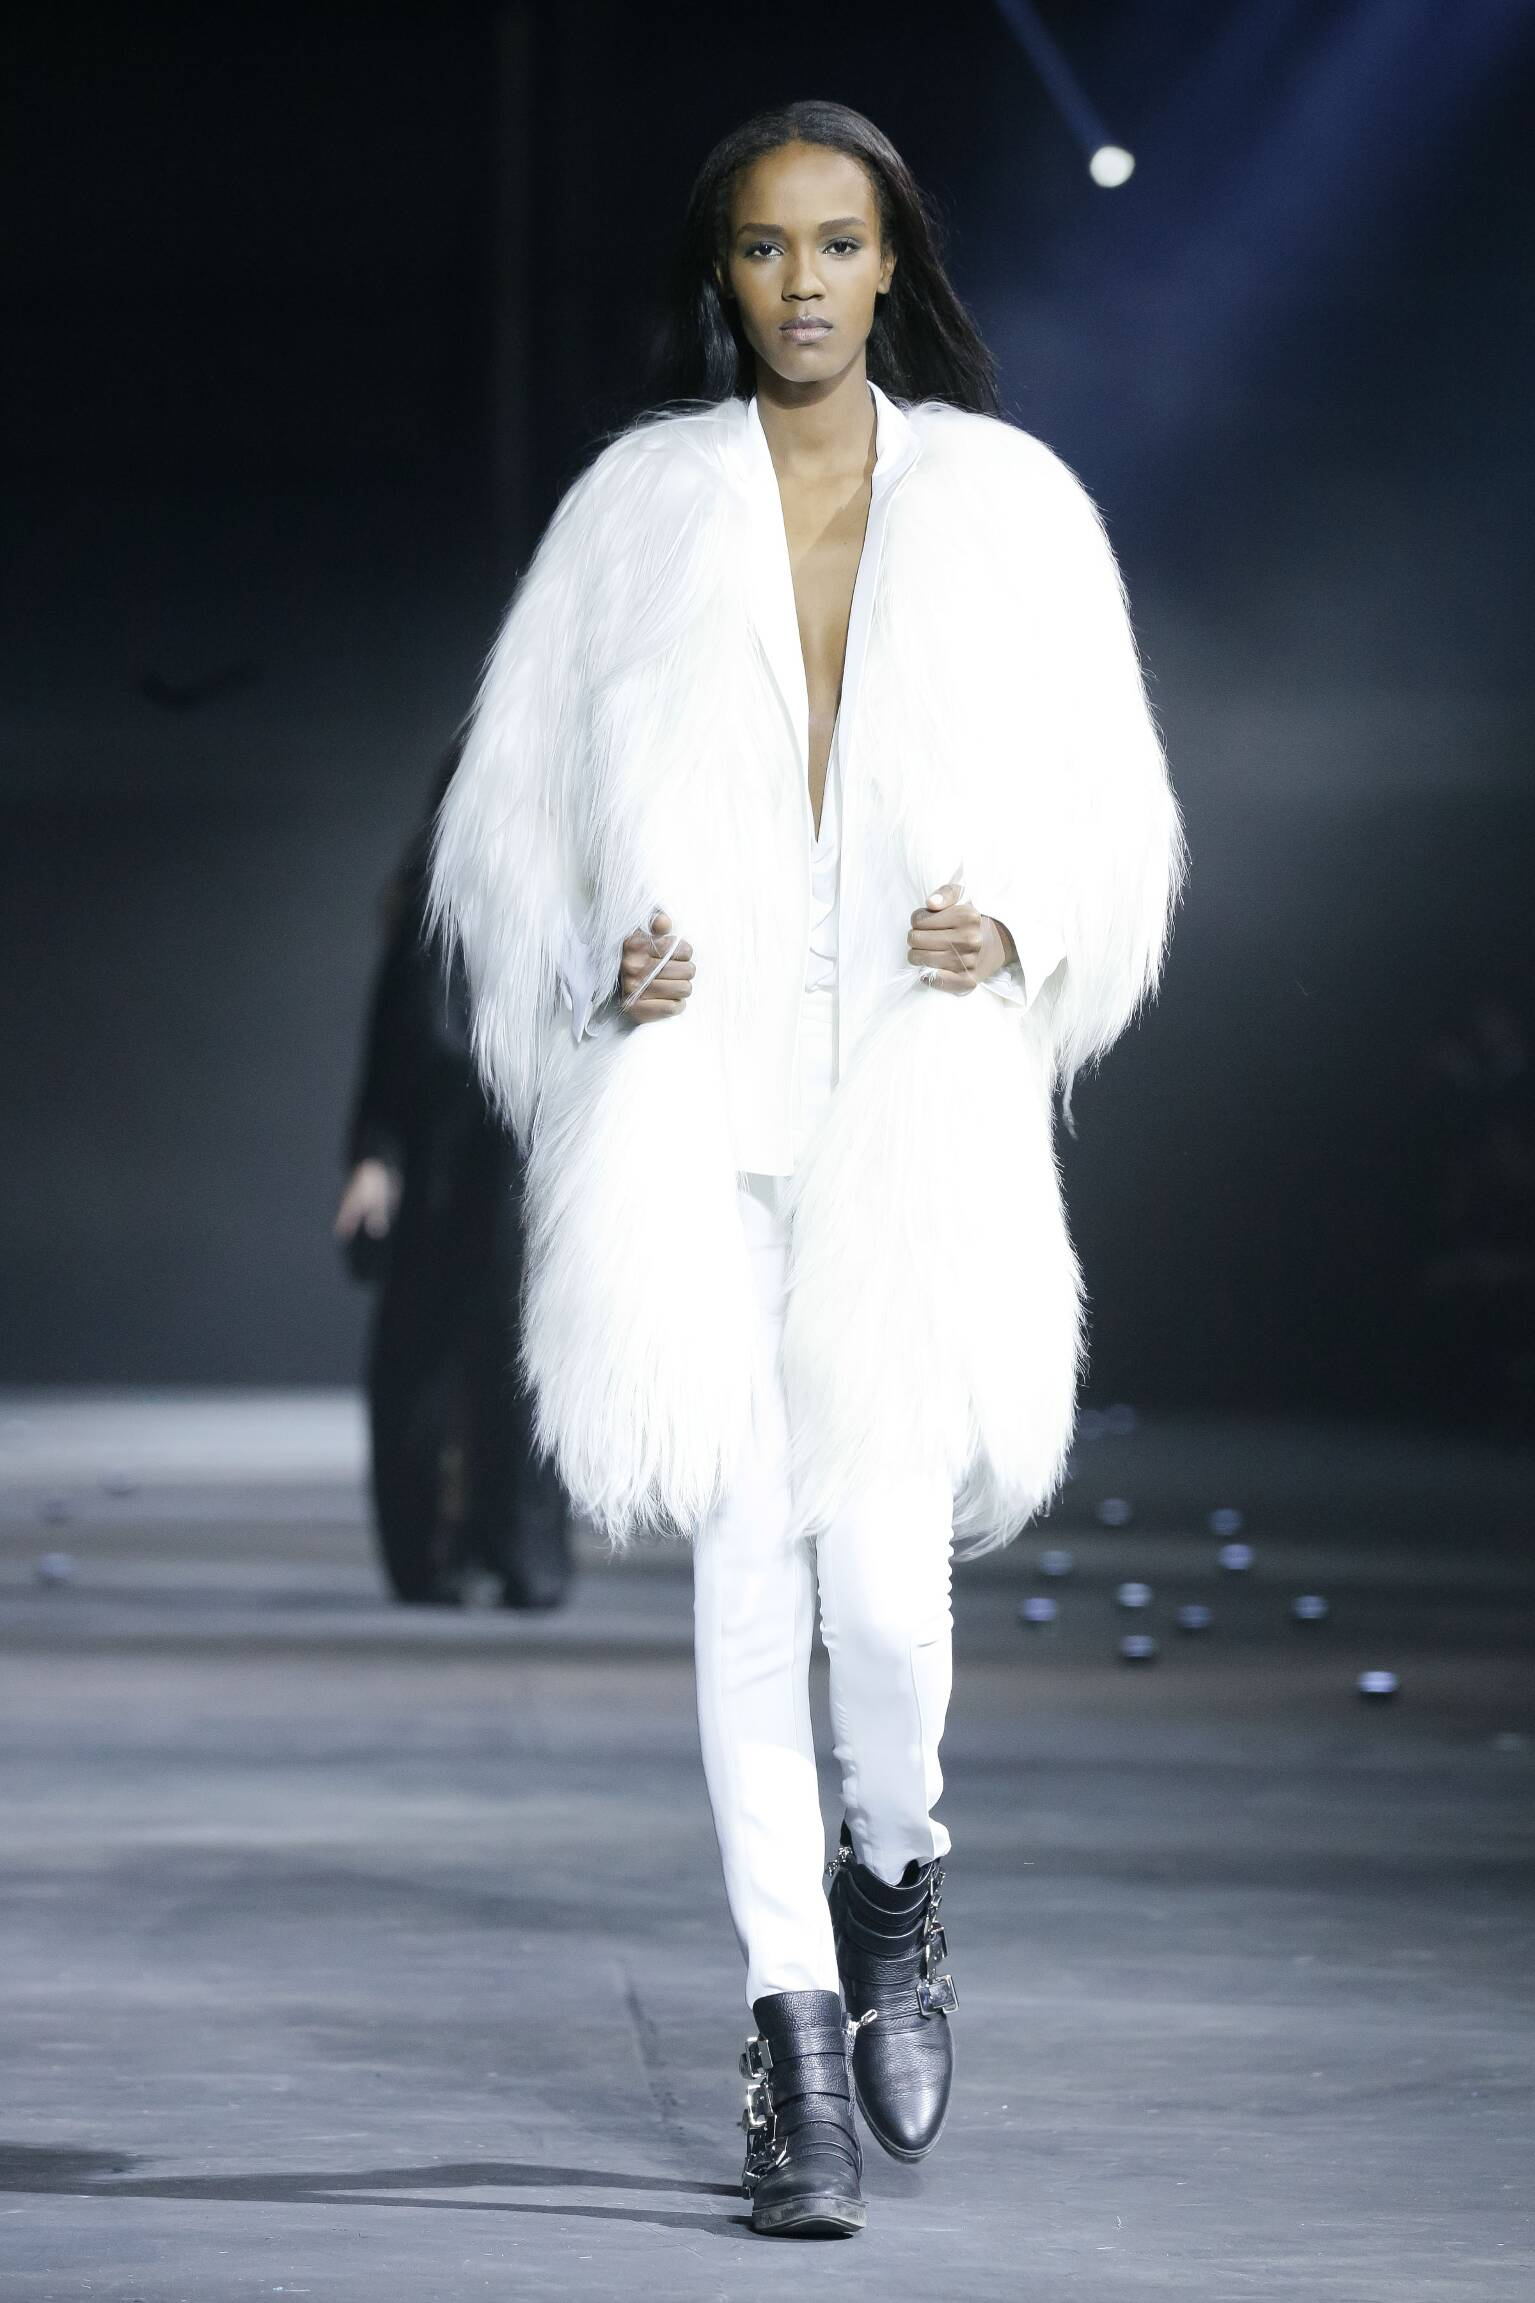 Philipp Plein Collection Fashion Show FW 2015 2016